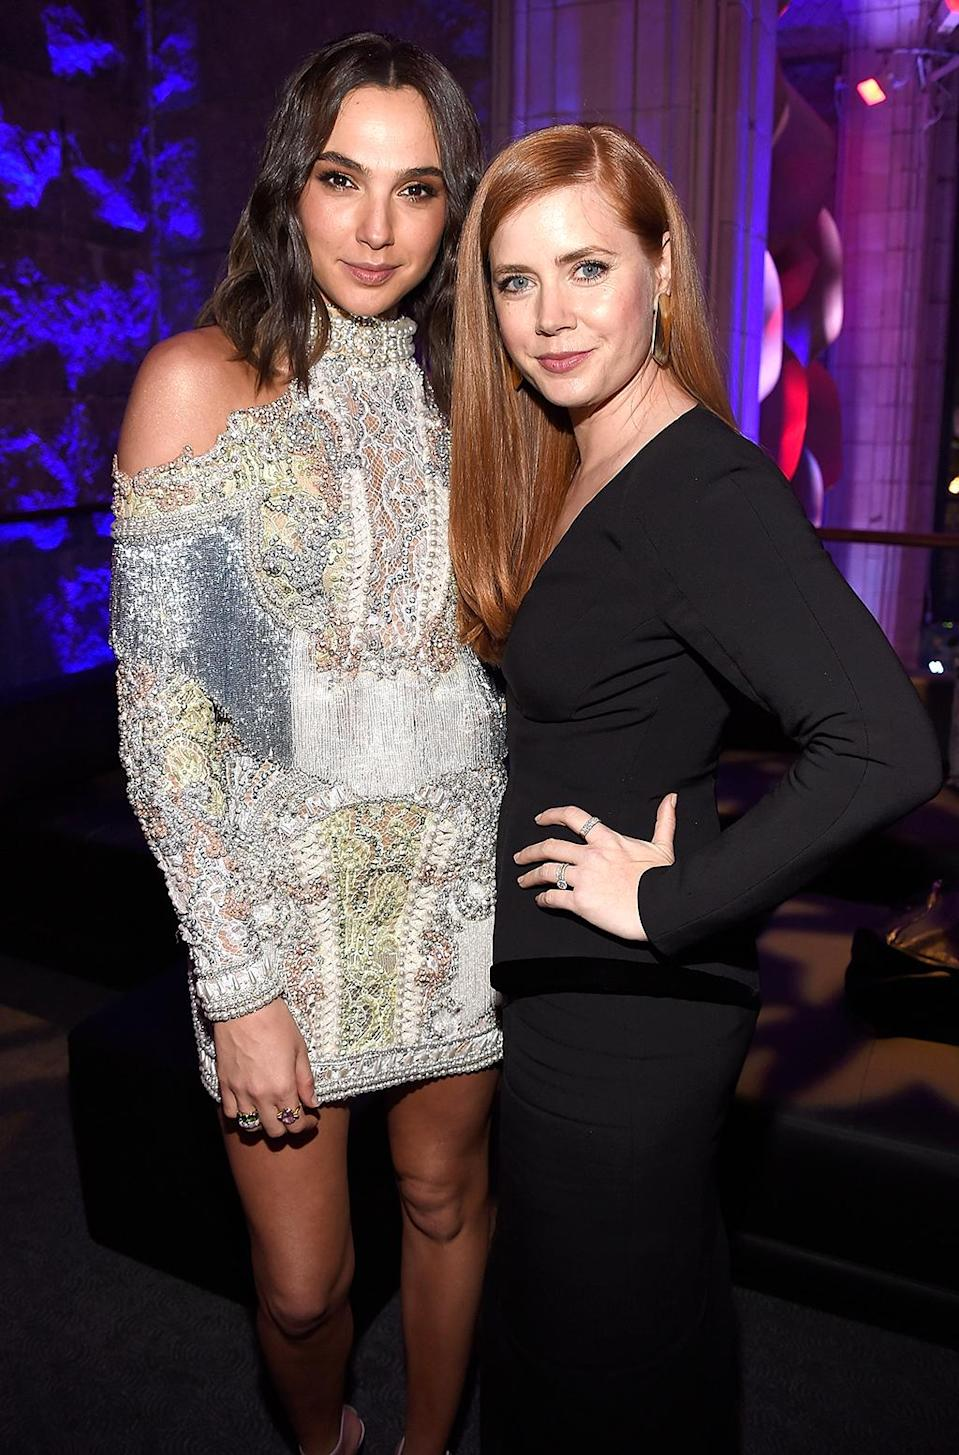 <p>Gadot and Amy Adams attend the after party for Batman v Superman: Dawn Of Justice on March 20, 2016 in New York City. (Photo: Kevin Mazur/Getty Images) </p>